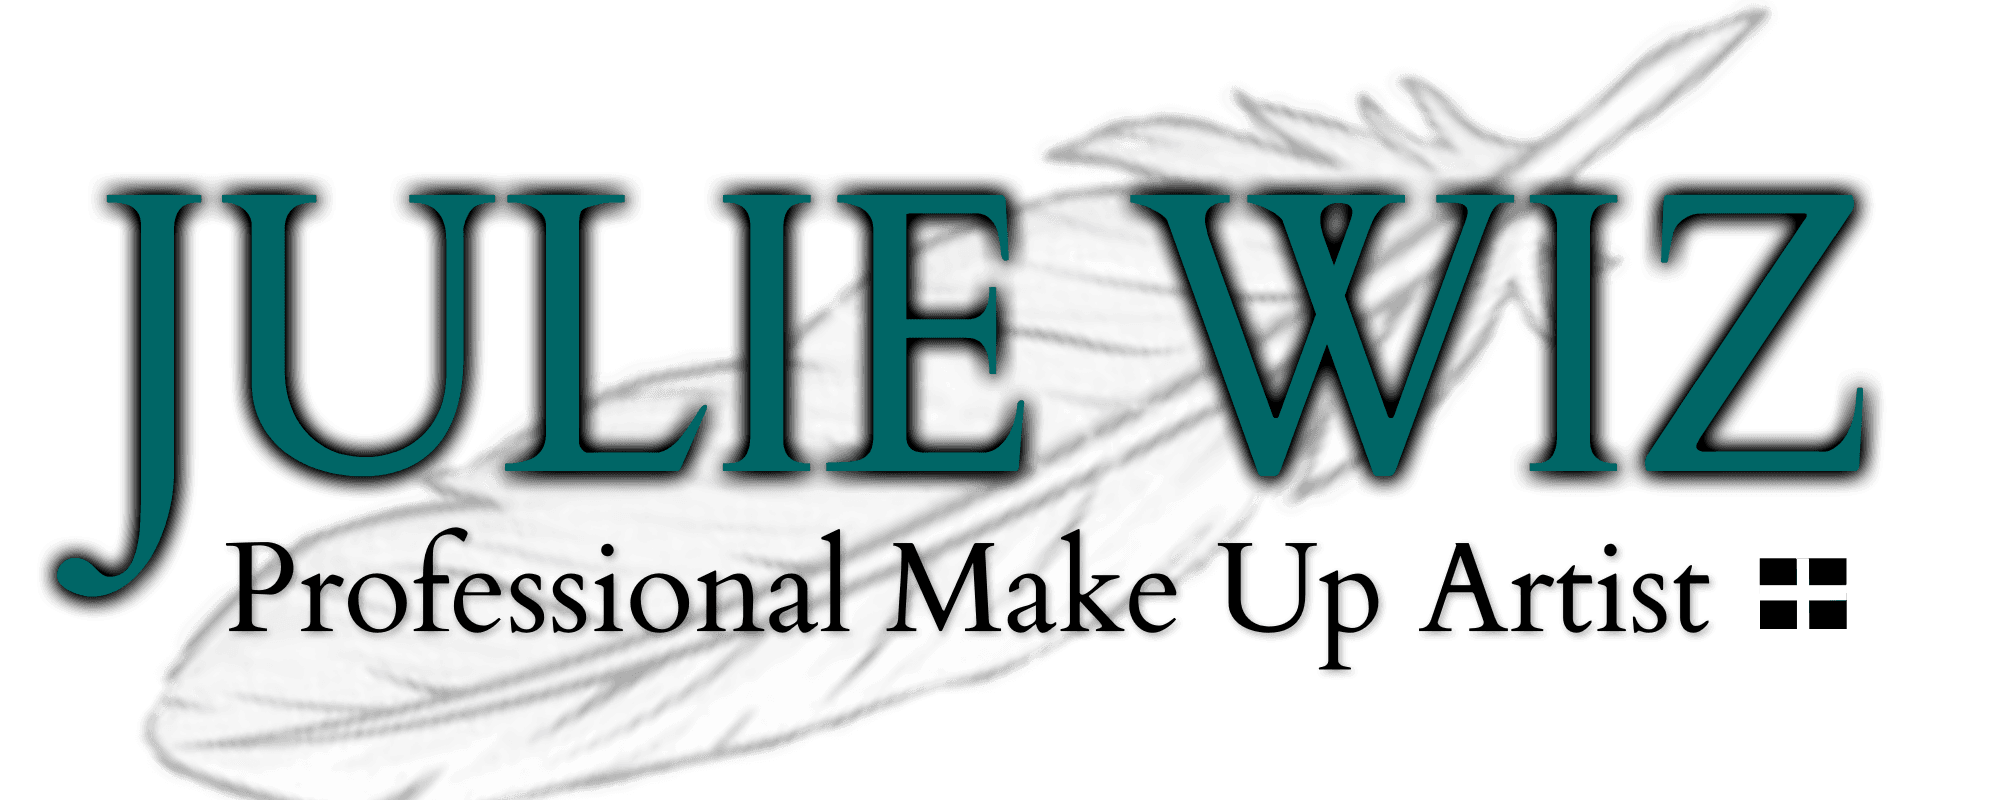 Julie Wiz Professional Make Up Artist logo